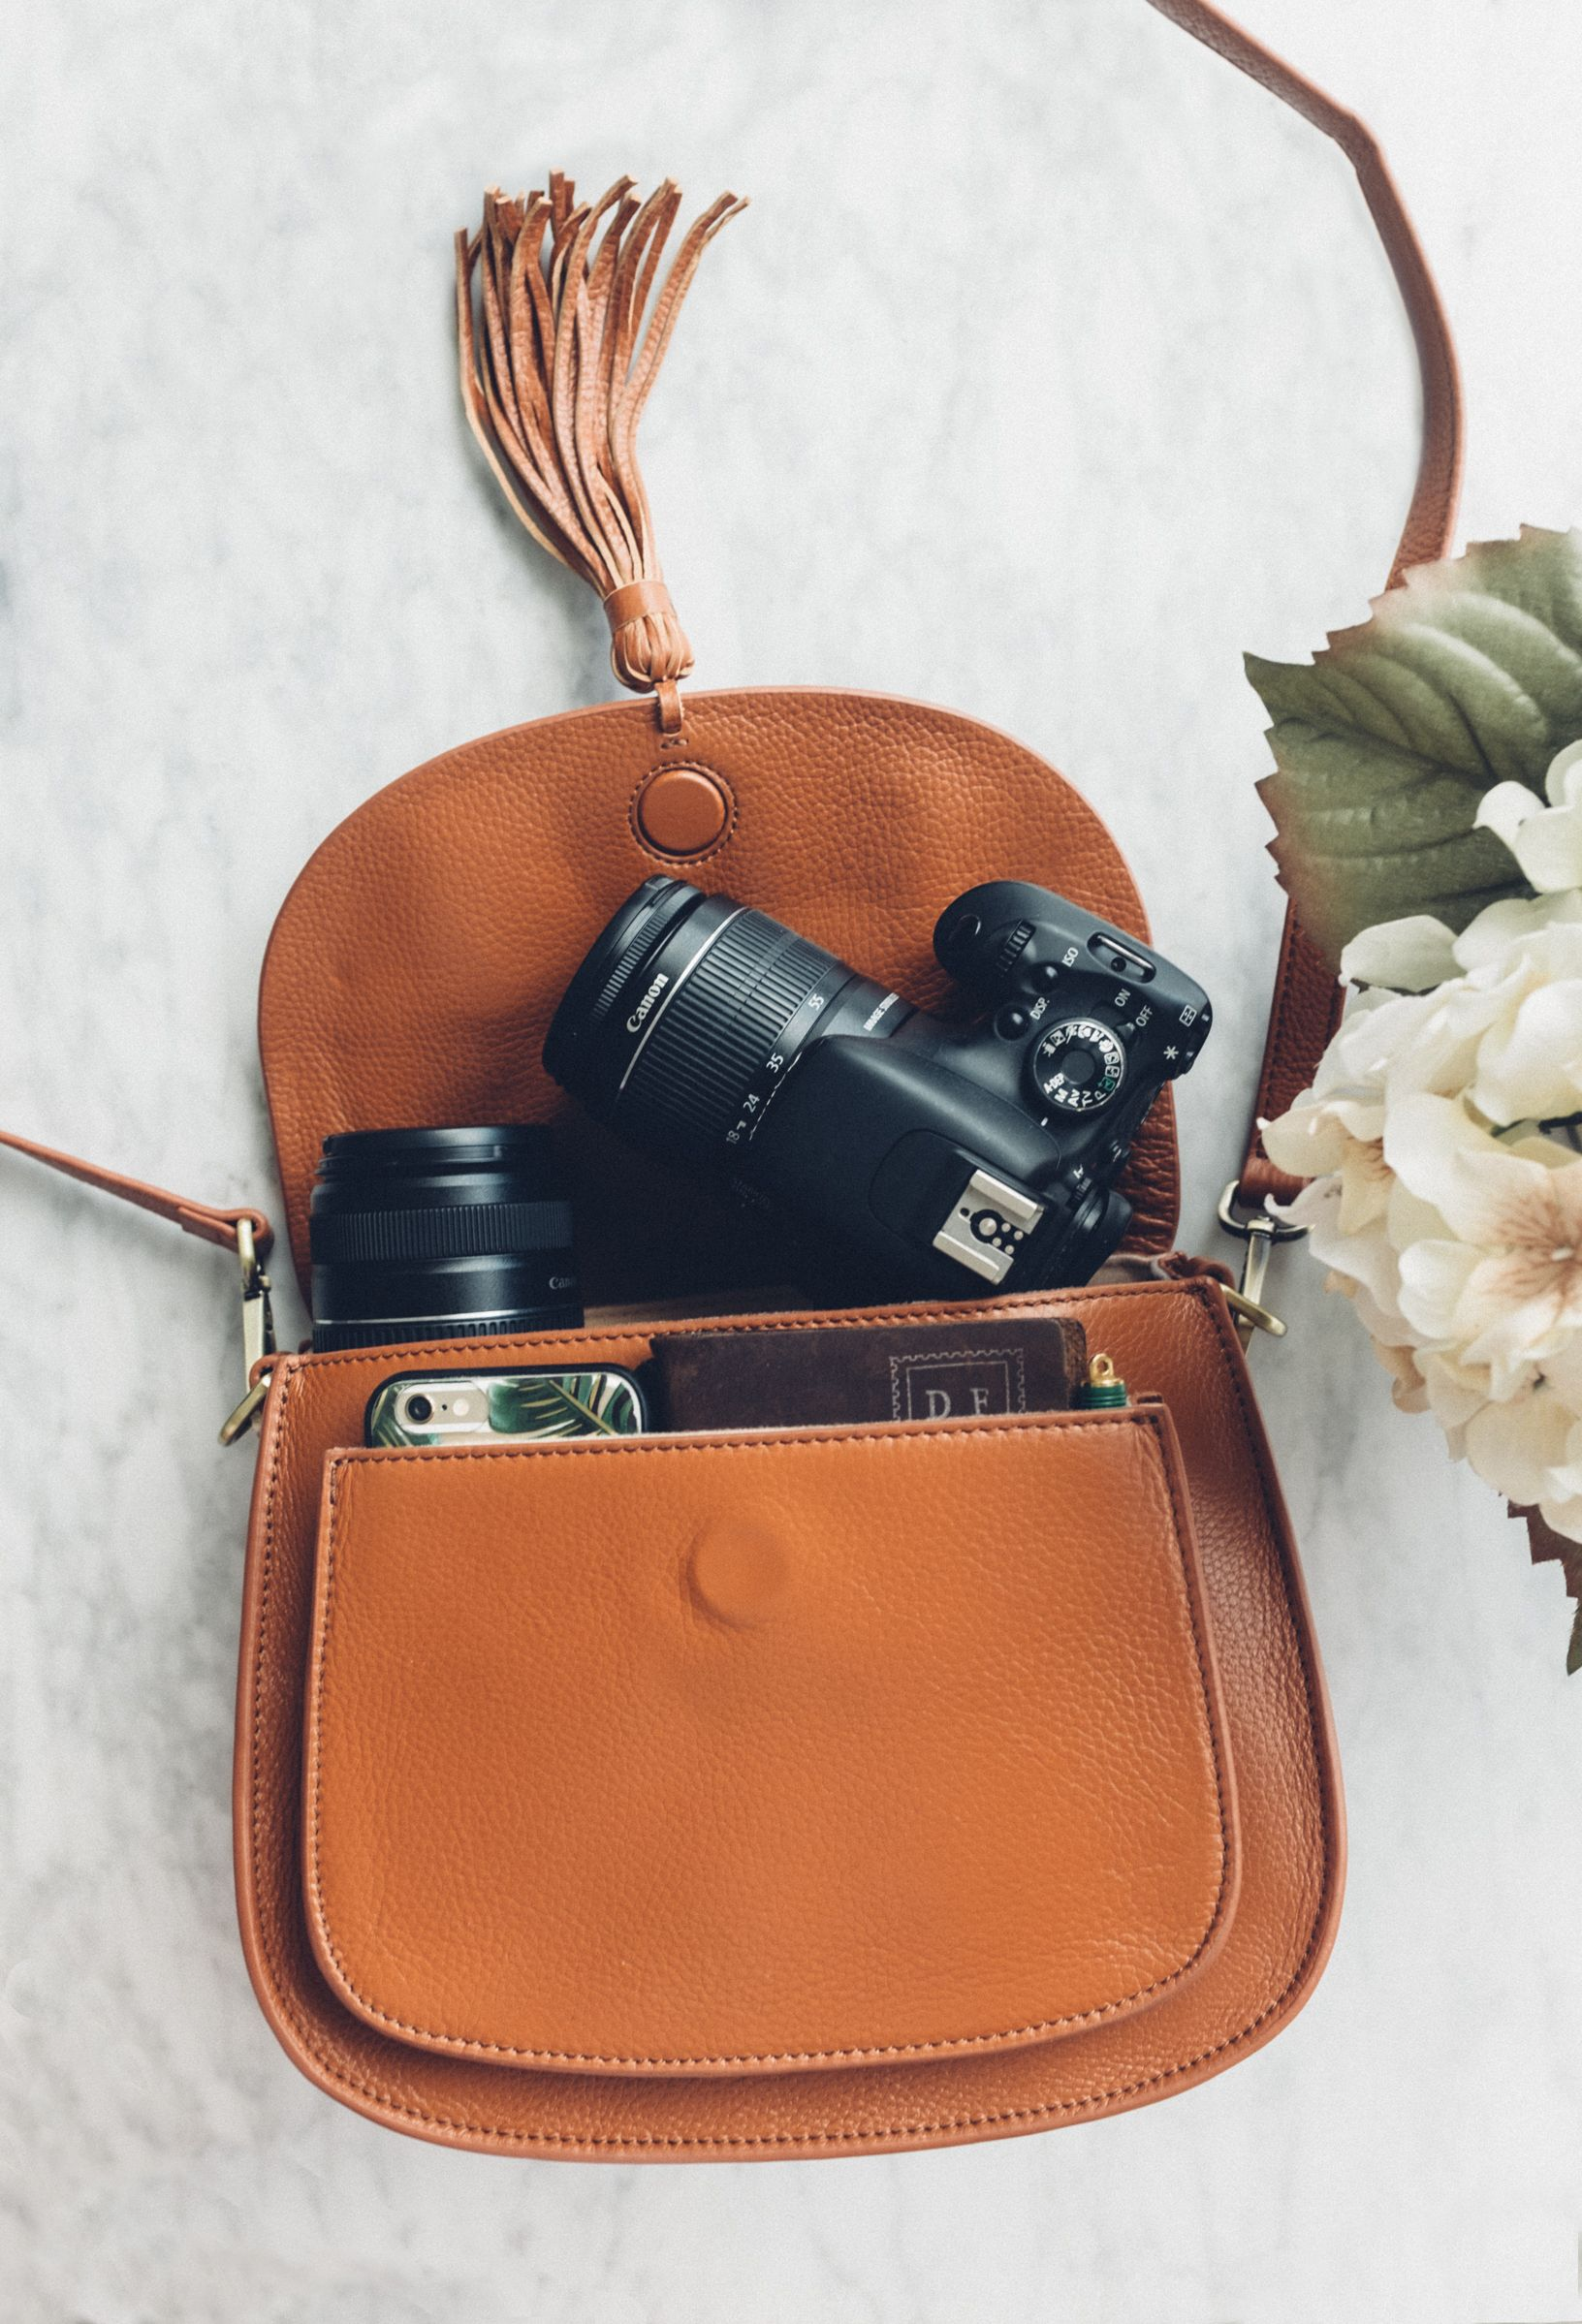 Lola Miel In 2019 Stylish Camera Bags Photography